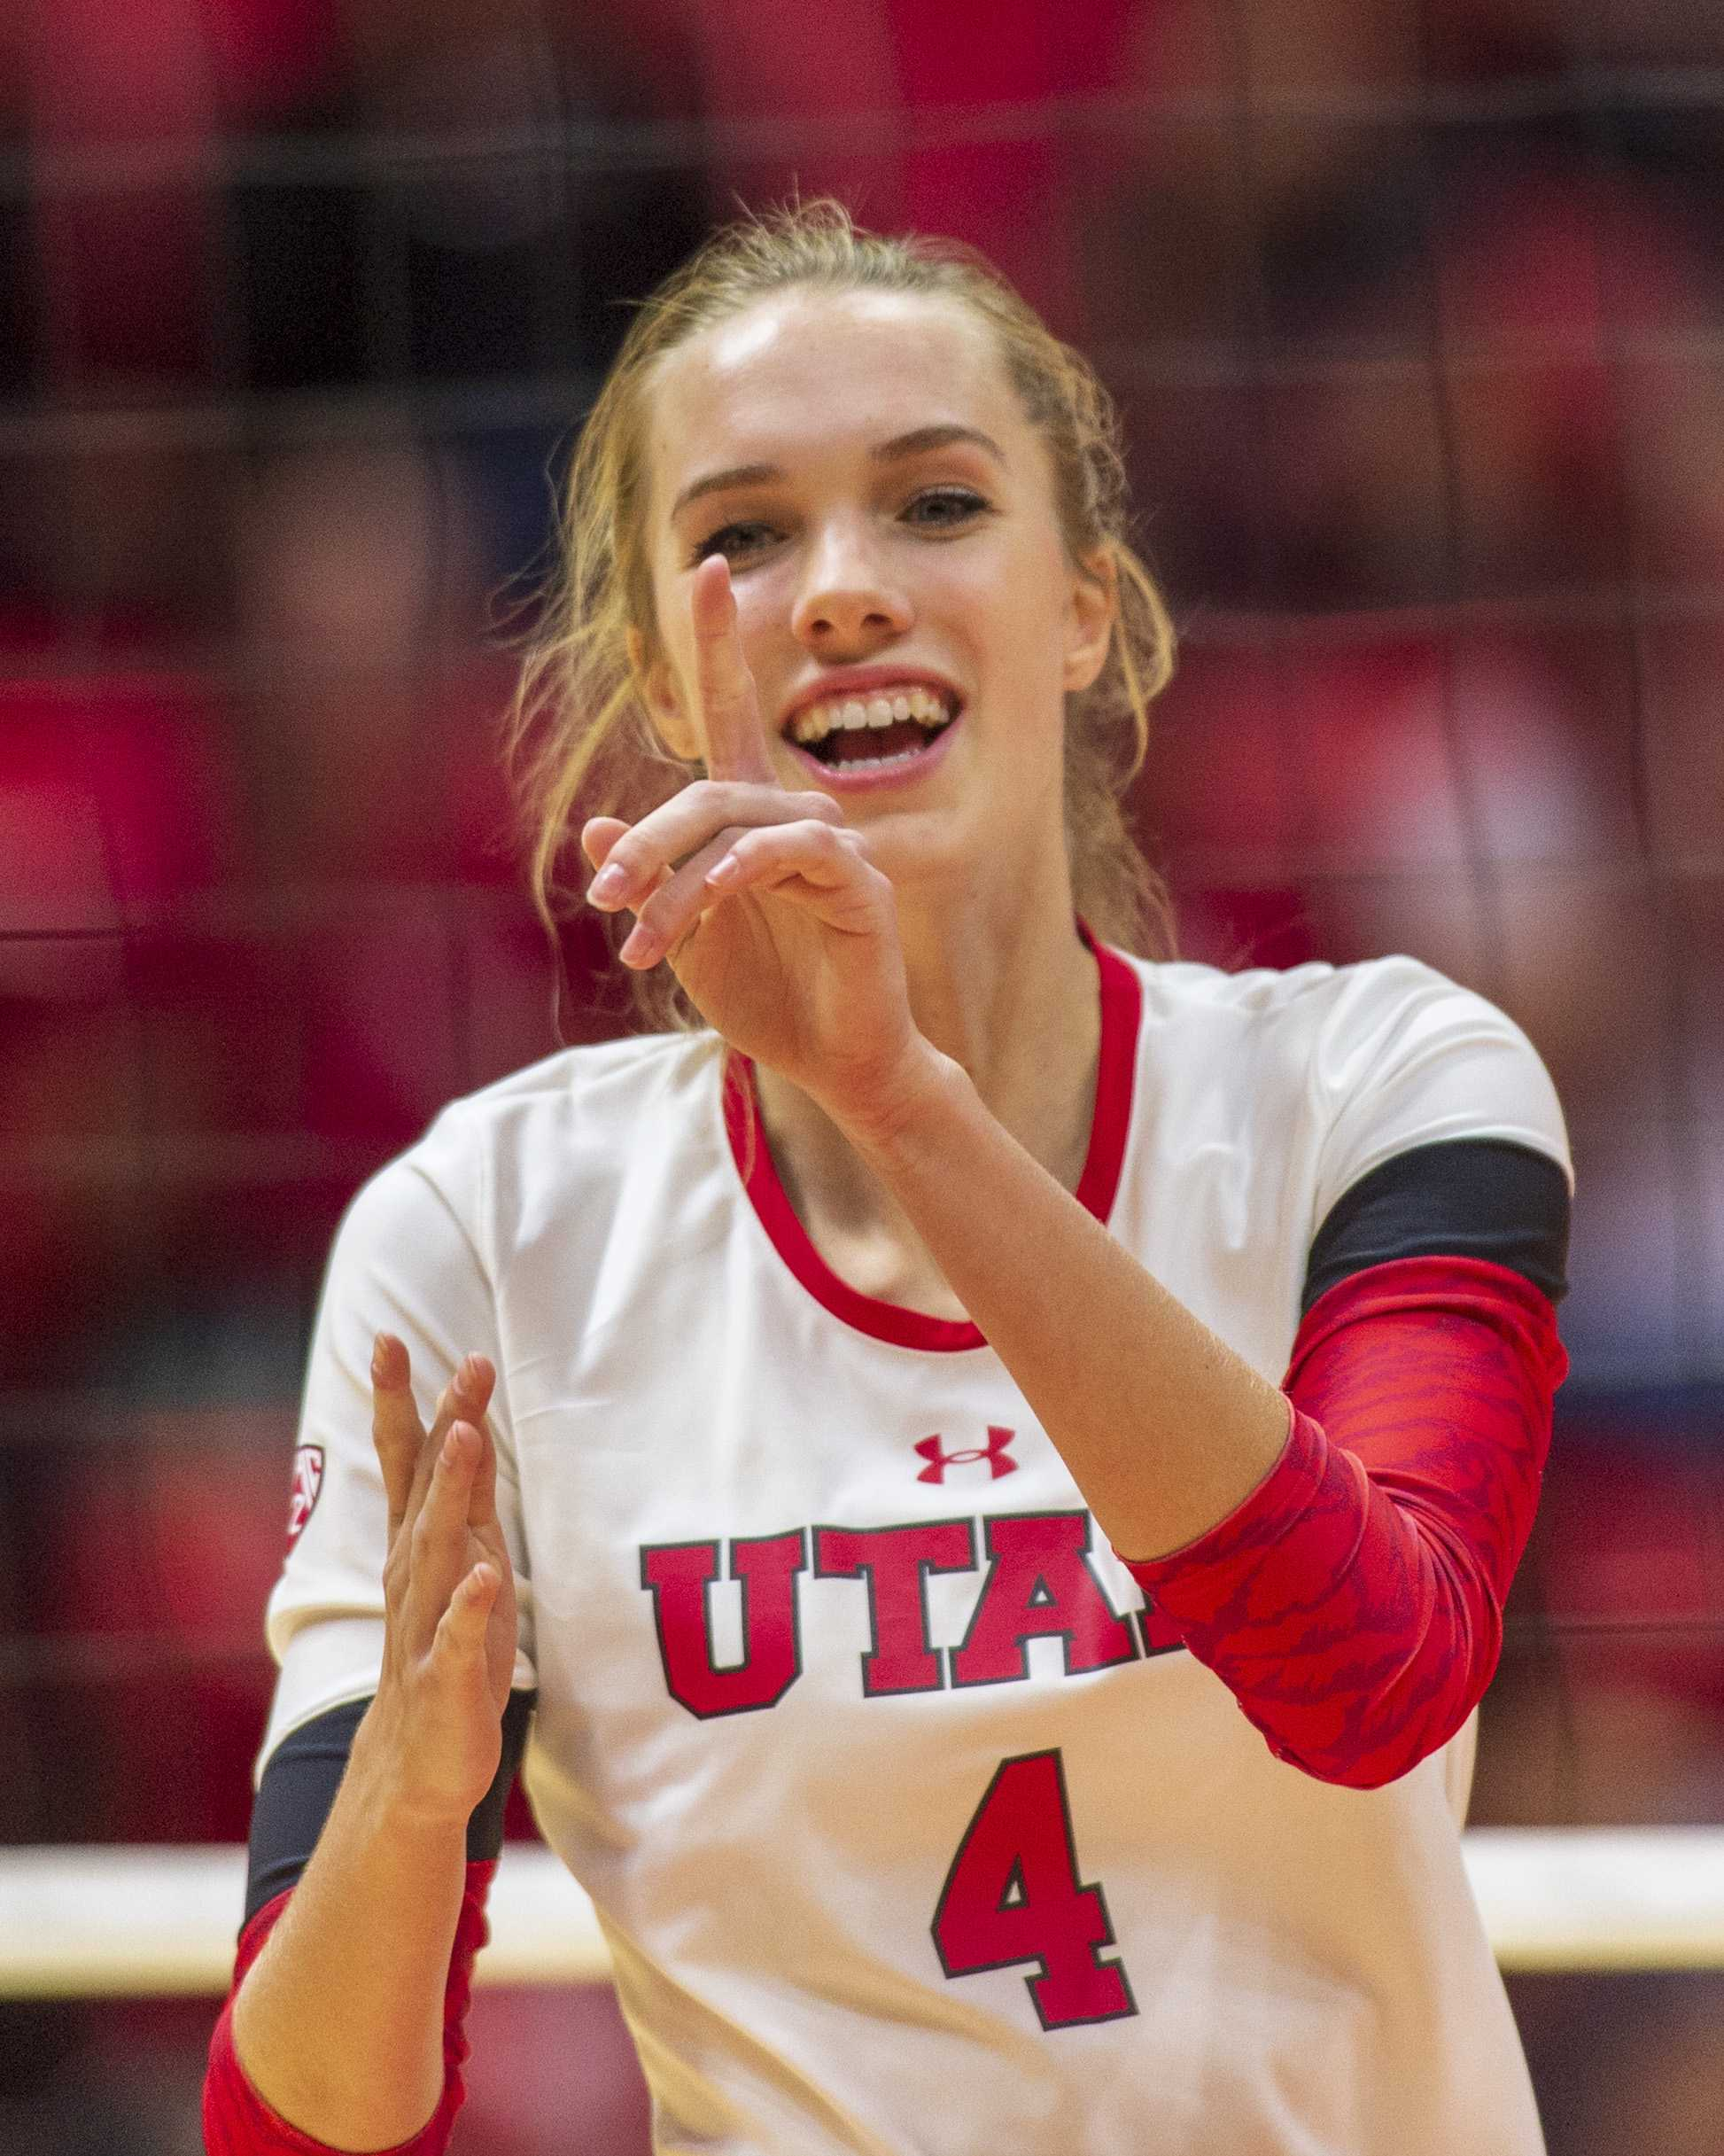 University of Utah sophomore outside hitter Kenzie Koerber (4) celebrates after a point in an NCAA Volleyball match vs. UVU at the Jon M. Huntsman Center in Salt Lake City, Utah on Friday, Sept. 14, 2018 (Photo by Kiffer Creveling | The Daily Utah Chronicle)